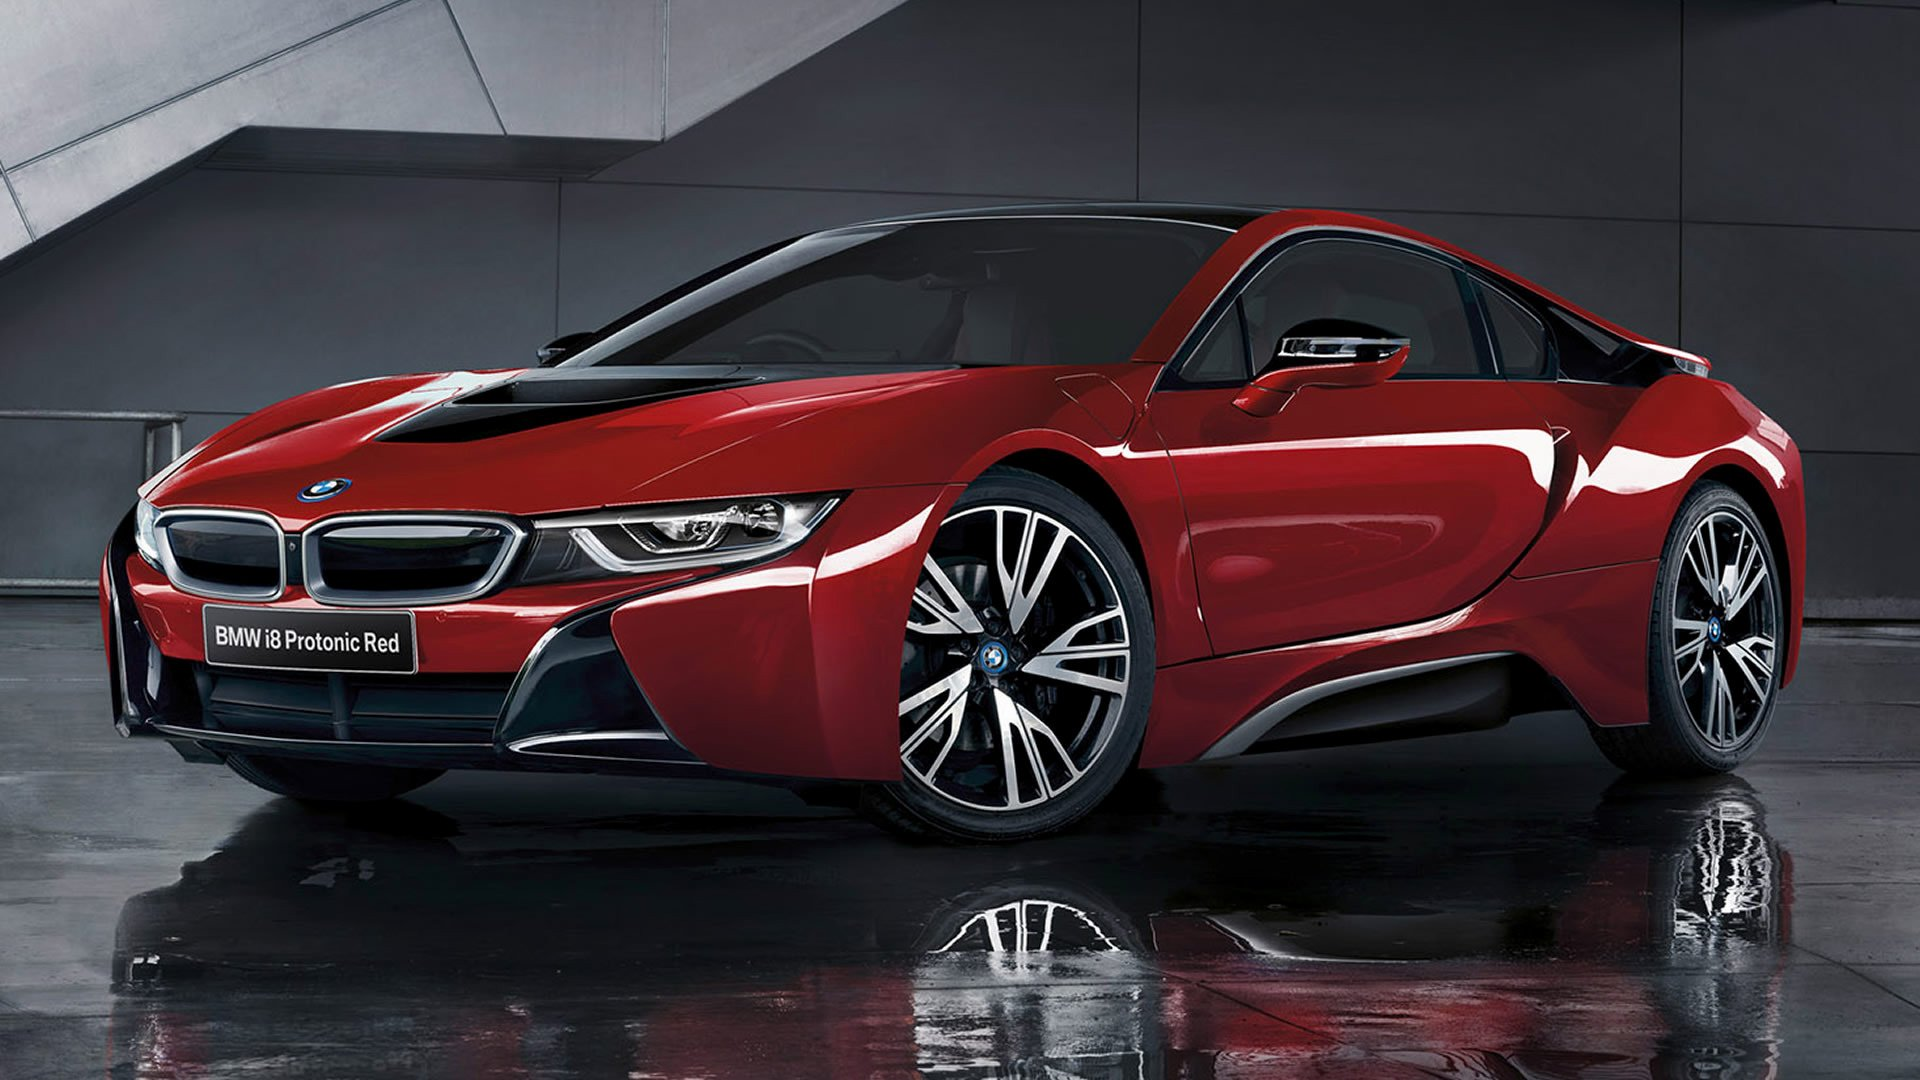 4 Bmw I8 Protonic Red Edition Hd Wallpapers Background Images Wallpaper Abyss